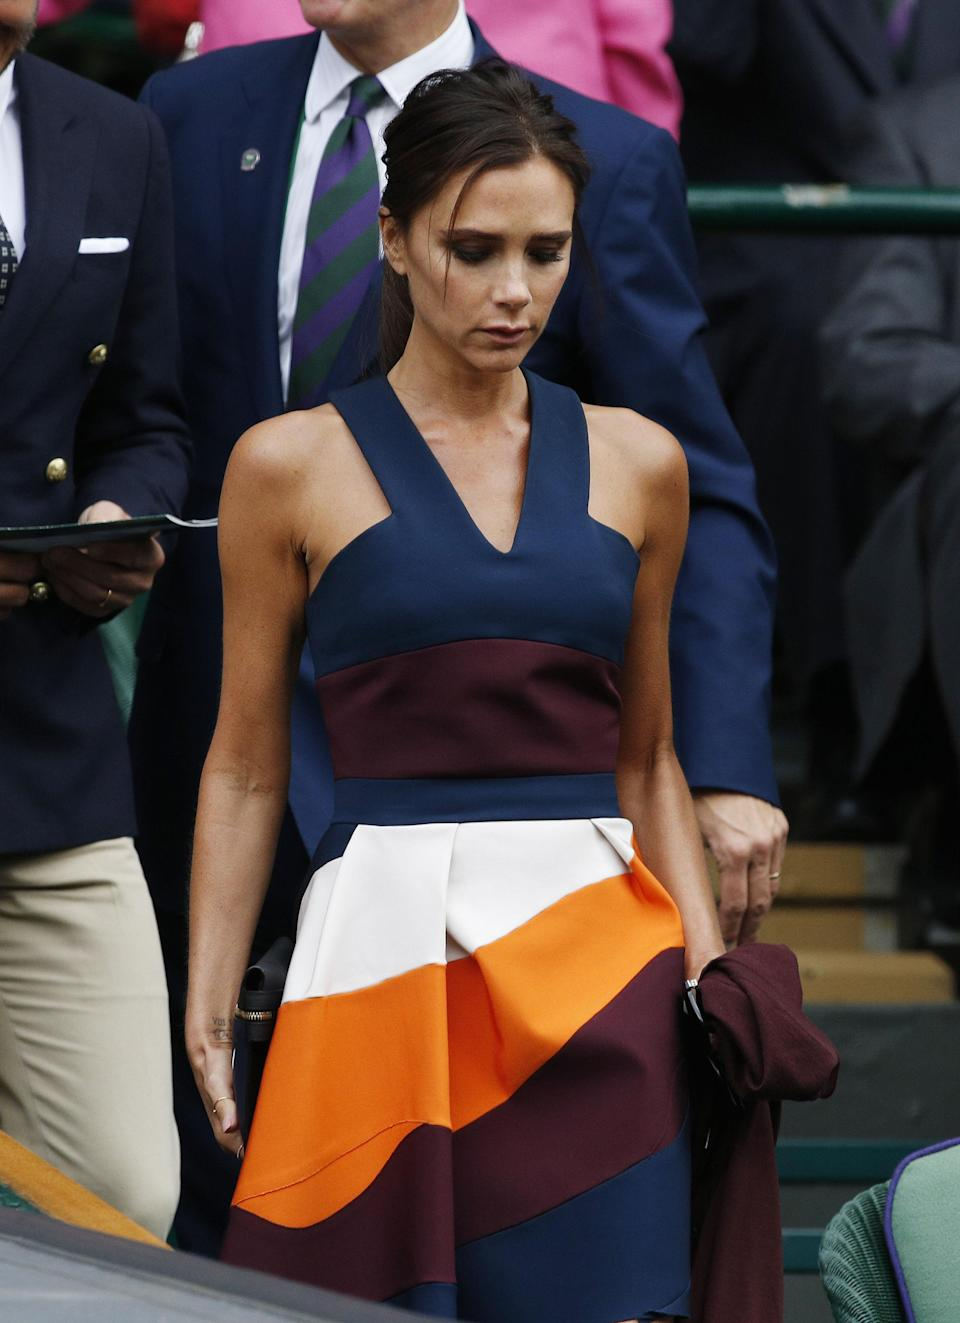 Victoria Beckham wearing one of her own designs to Wimbledon in 2014 [Photo: Getty]